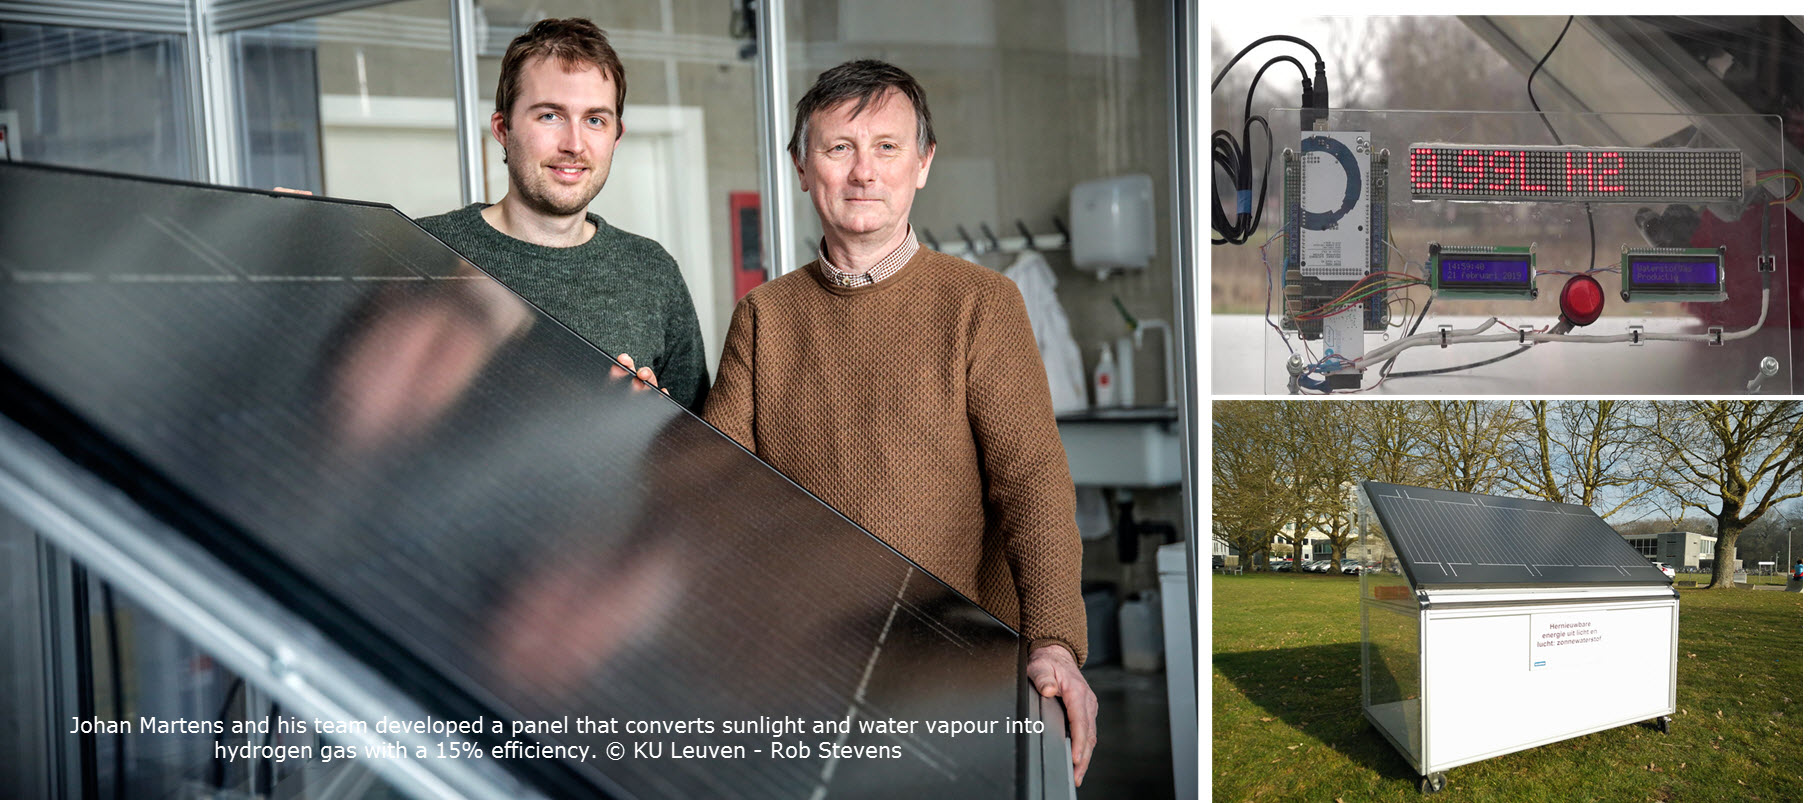 Looking past the Hype: KU Leuven Researchers Shed More Light on their Hydrogen Panel - FuelCellsWorks